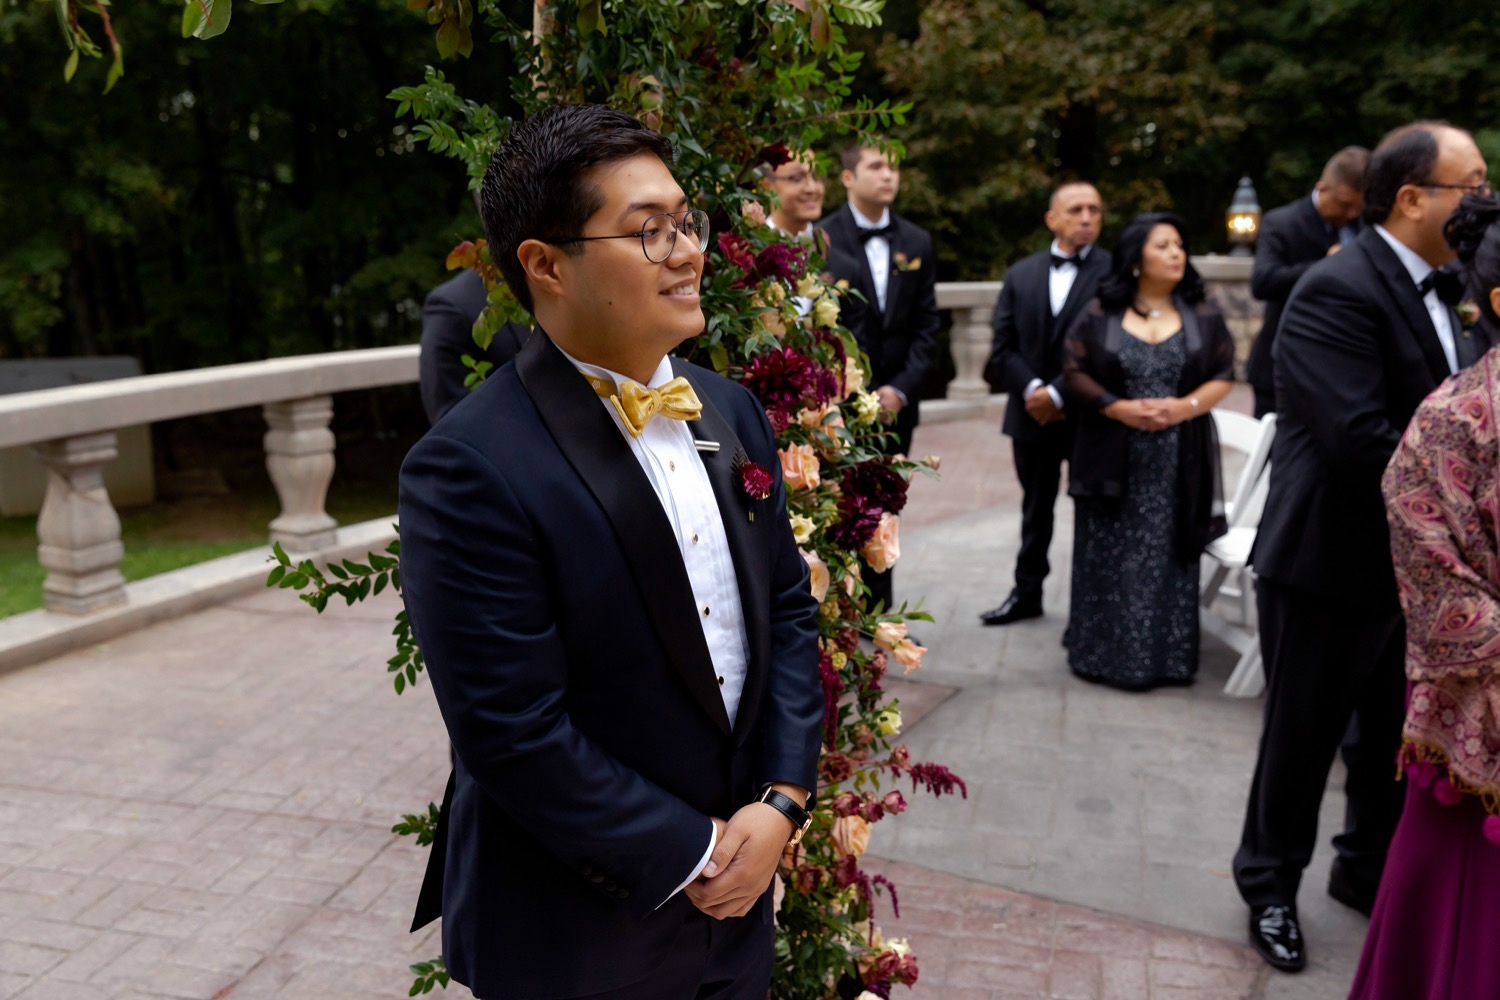 A groom seeing his bride coming for a wedding ceremony at the Tappan Hill Mansion.